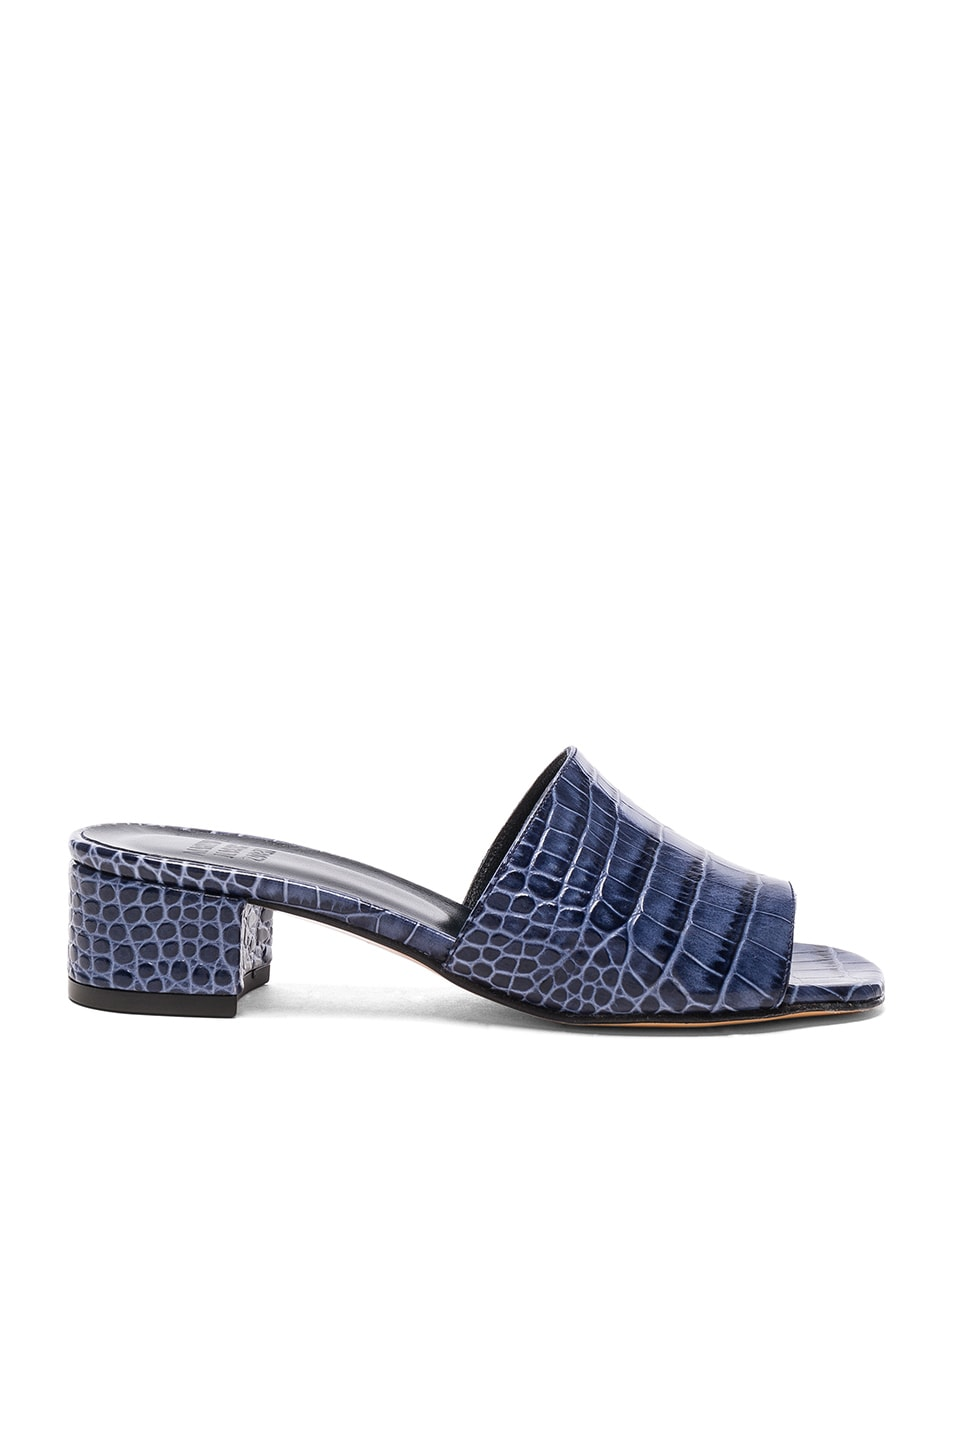 Image 1 of Maryam Nassir Zadeh Leather Sophie Slide Heels in Navy Faux Croc